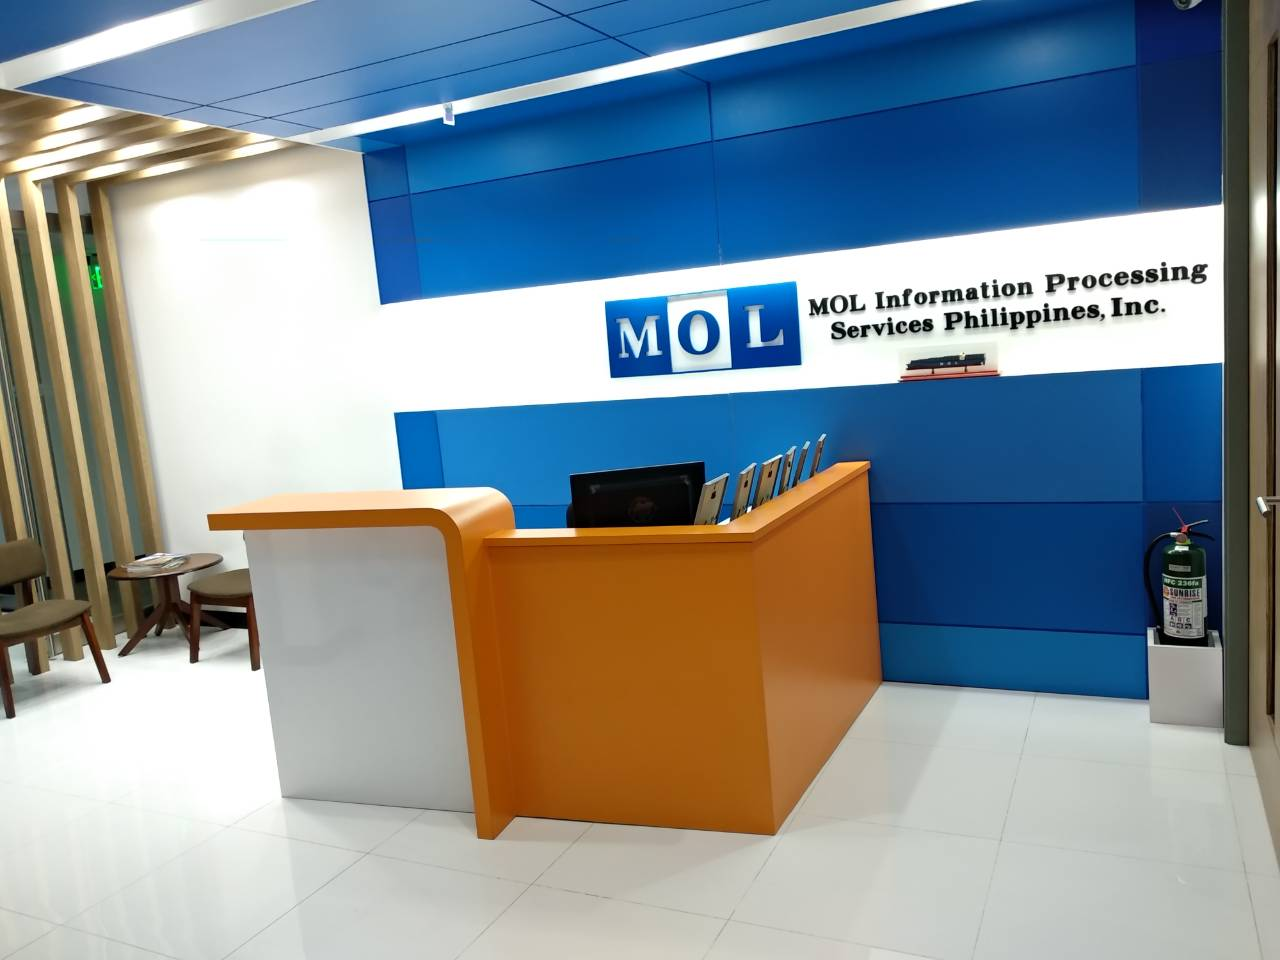 mol-information-processing-services-philippines,-inc.photos-1